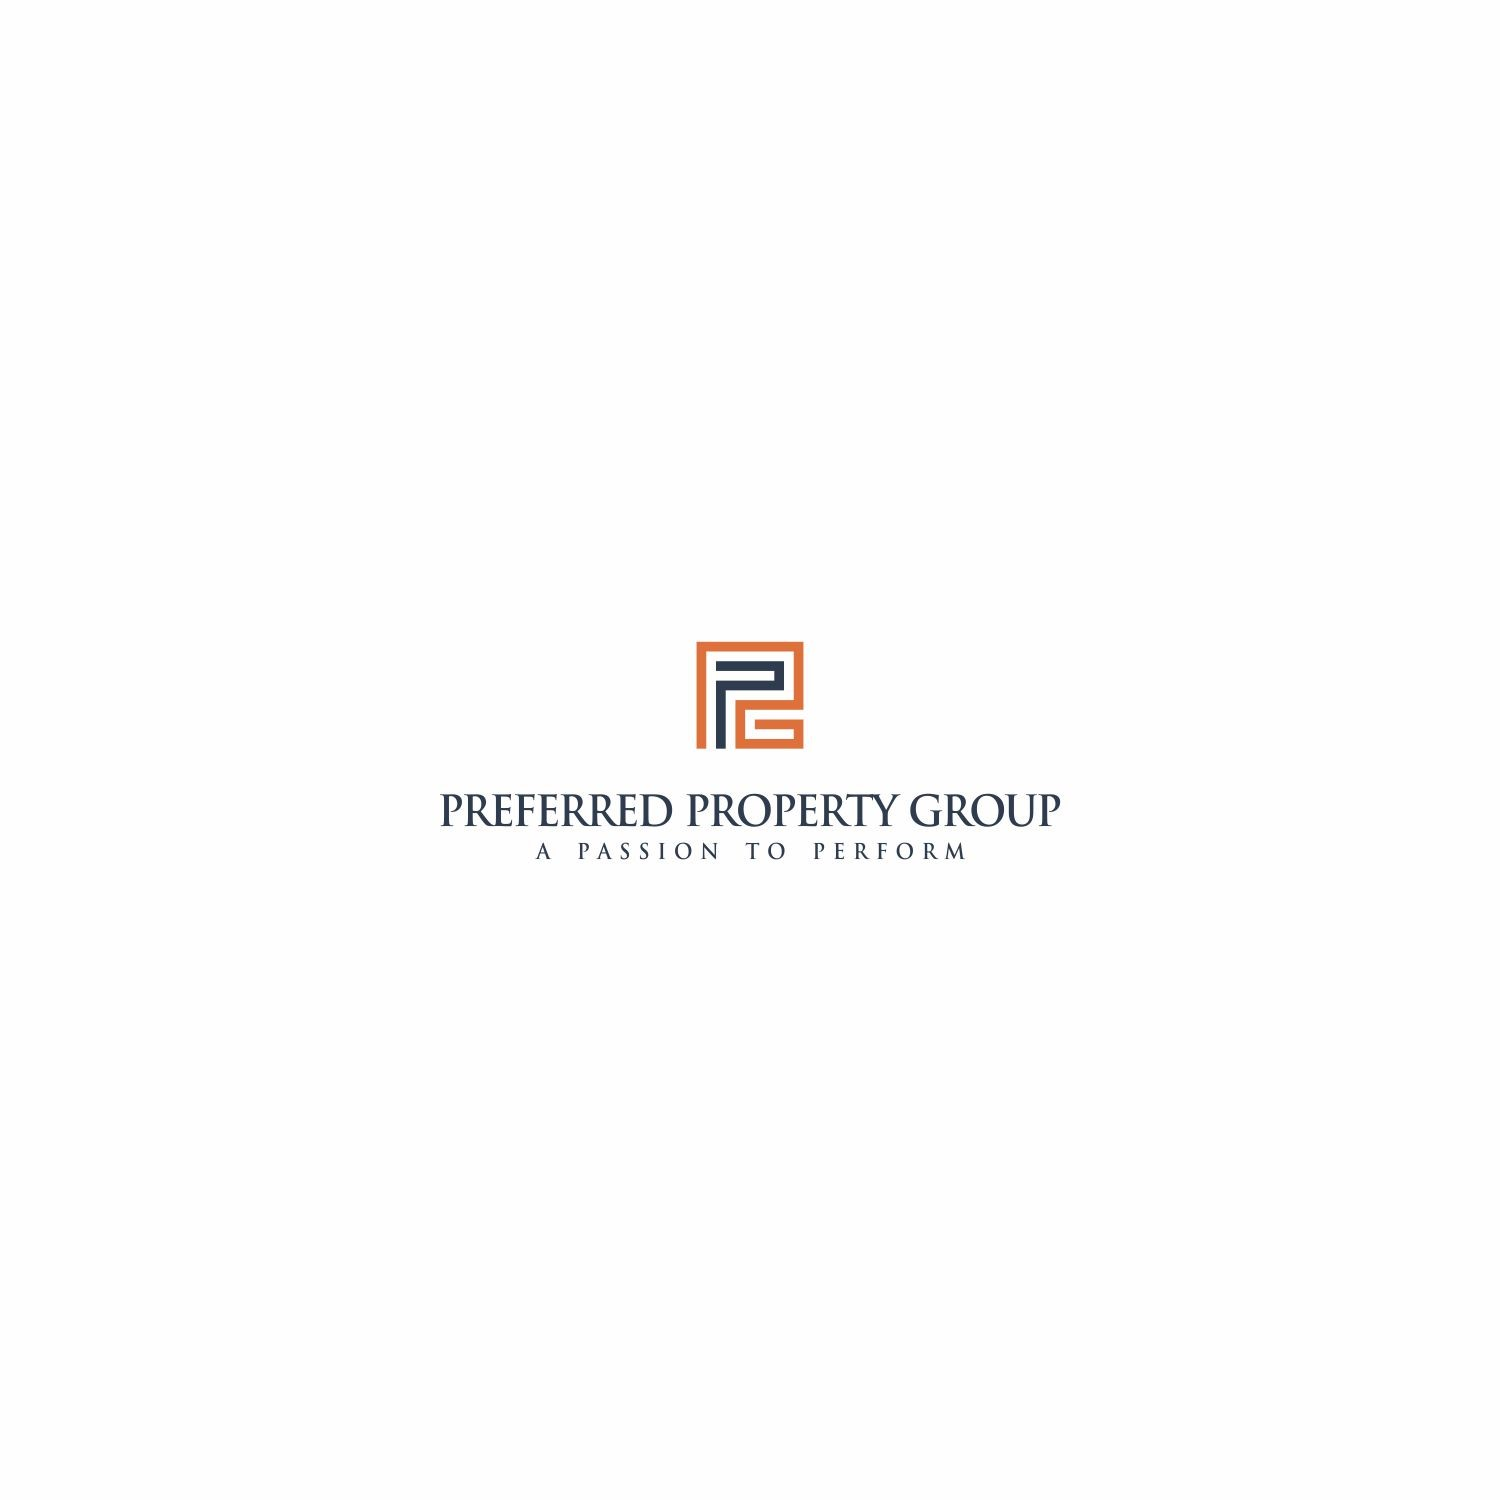 Preferred Property Group, LLC